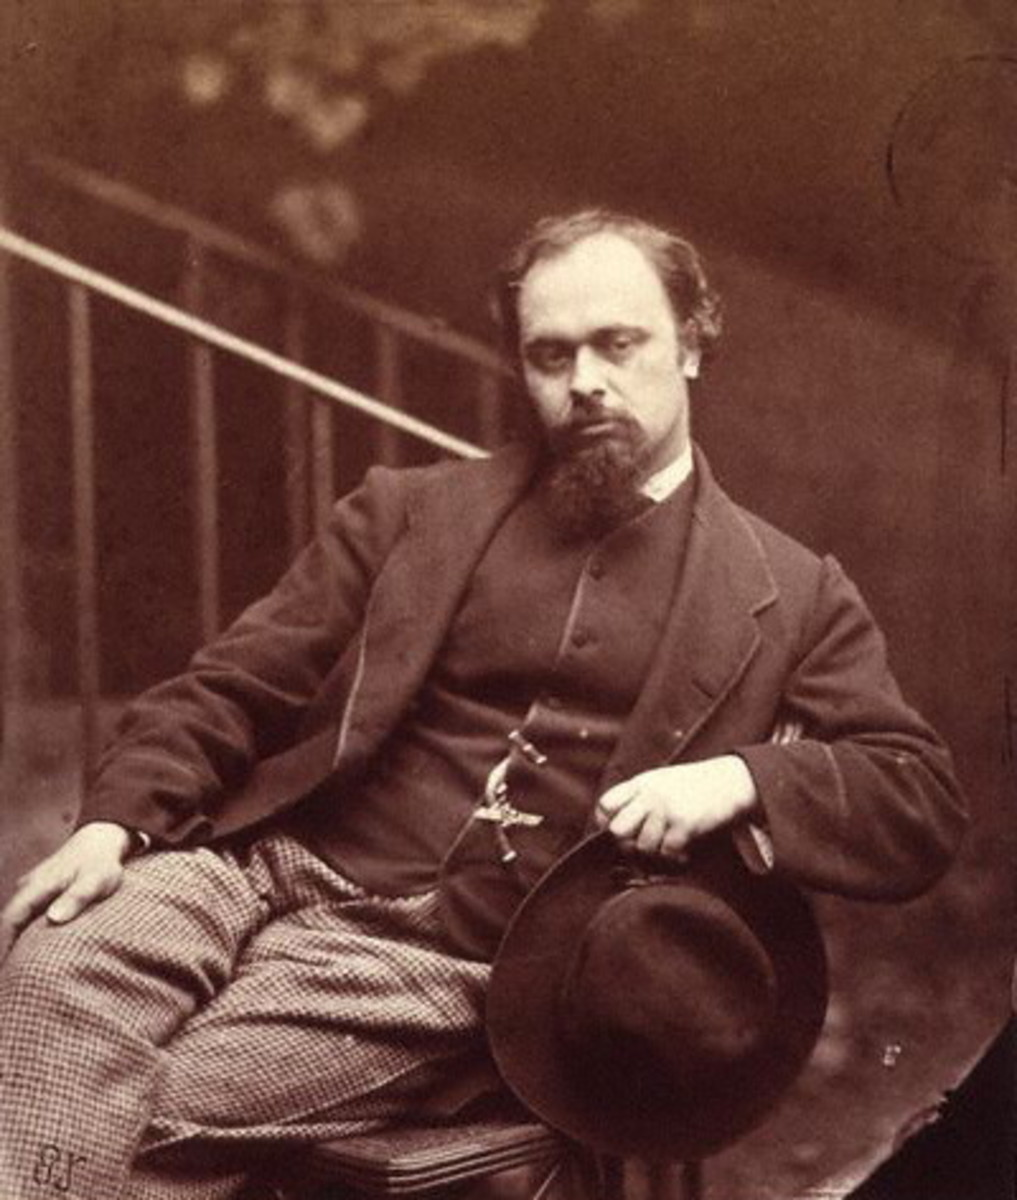 Photo of Dante Gabriel Rossetti by Lewis Carroll in 1863.